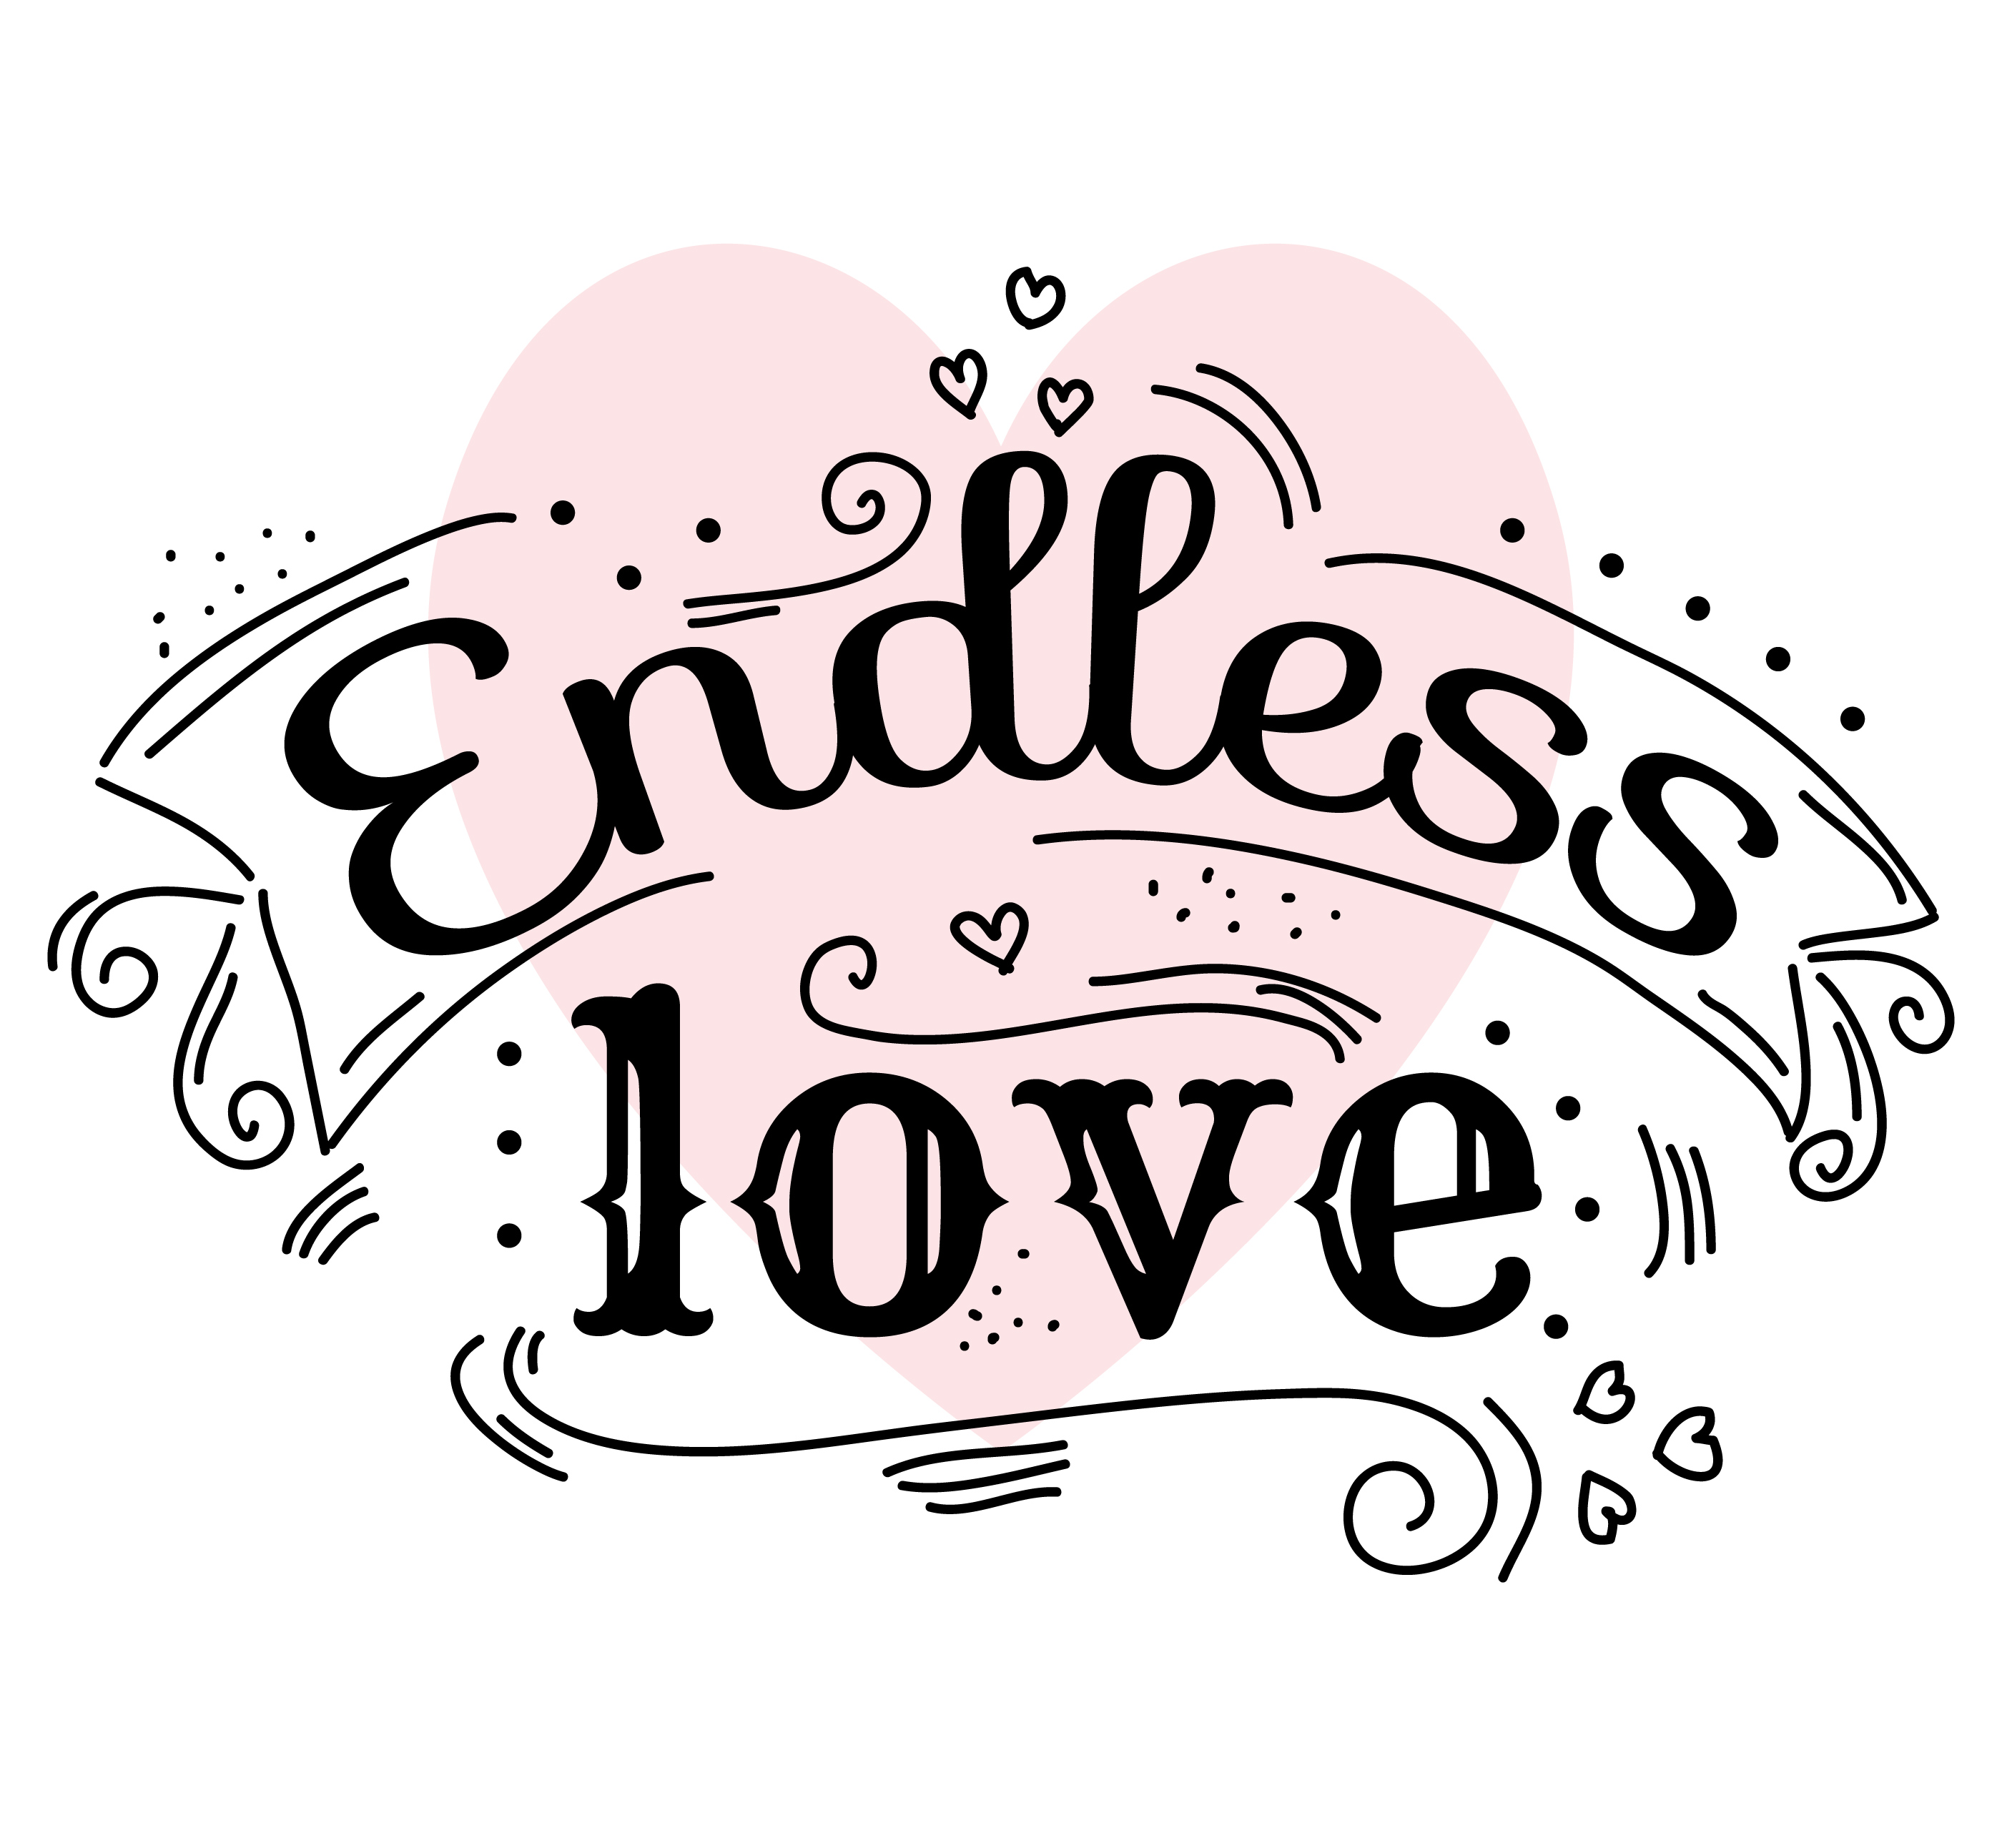 Endless Love Vector - Download Free Vector Art, Stock ...